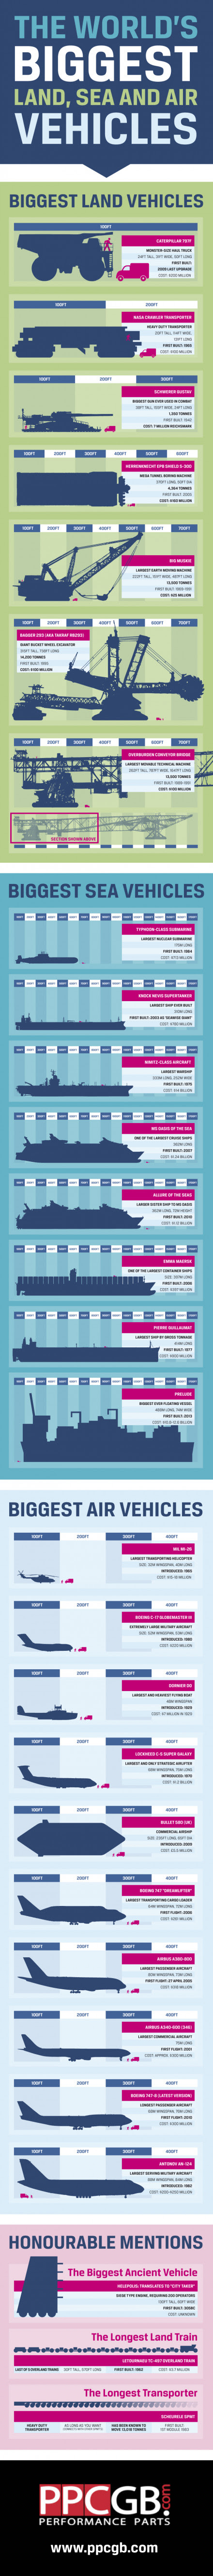 The Largest Land, Sea and Air Vehicles in the World